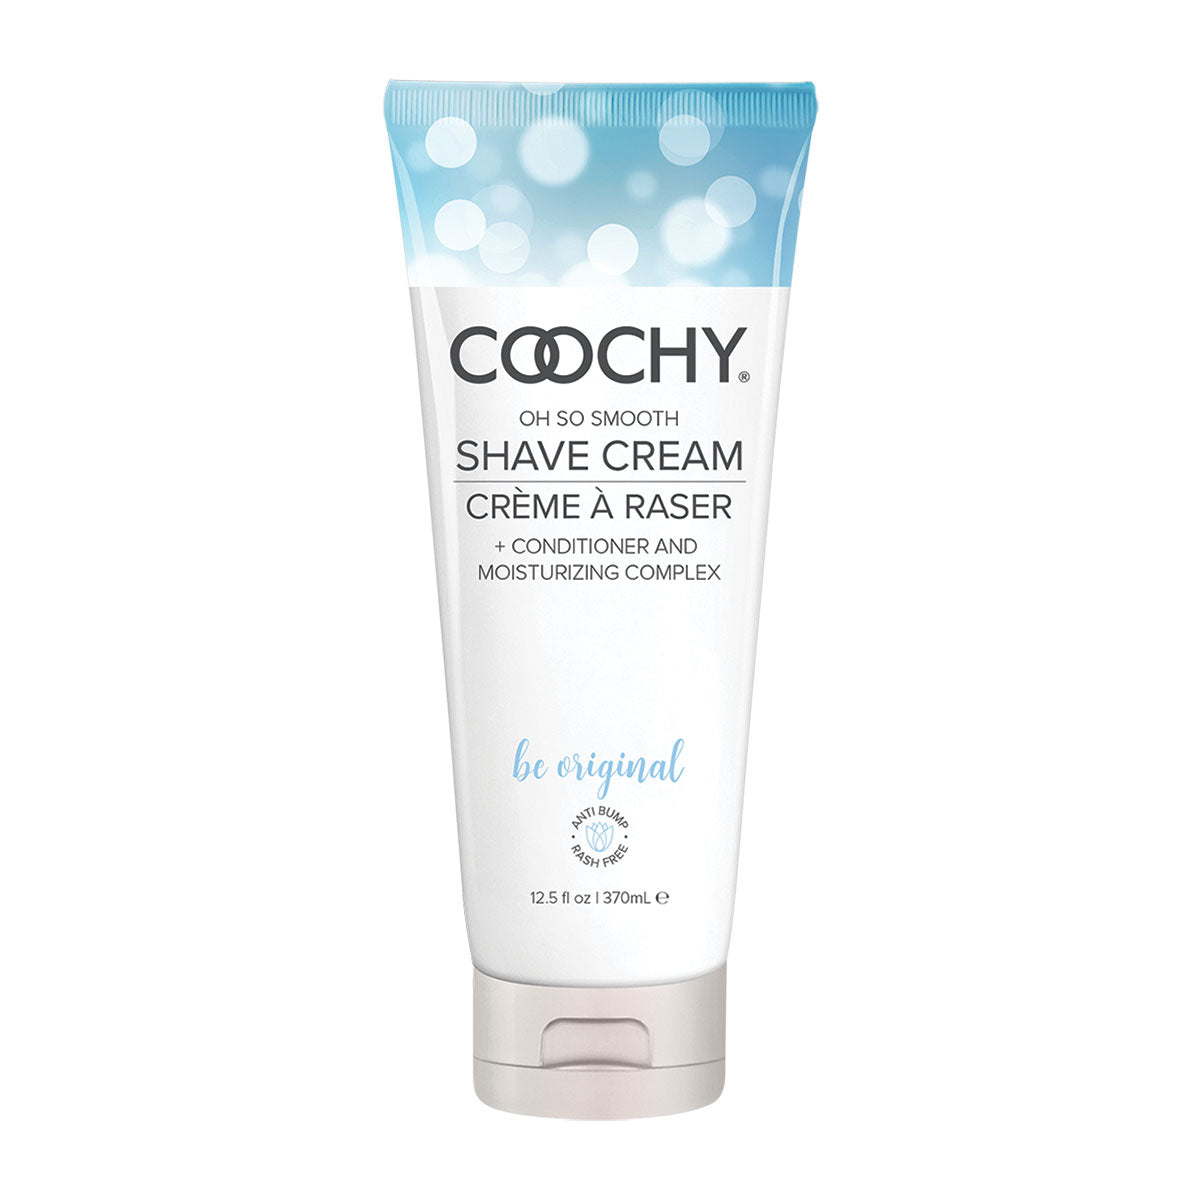 Coochy Shave Cream 12.5oz - Be Original